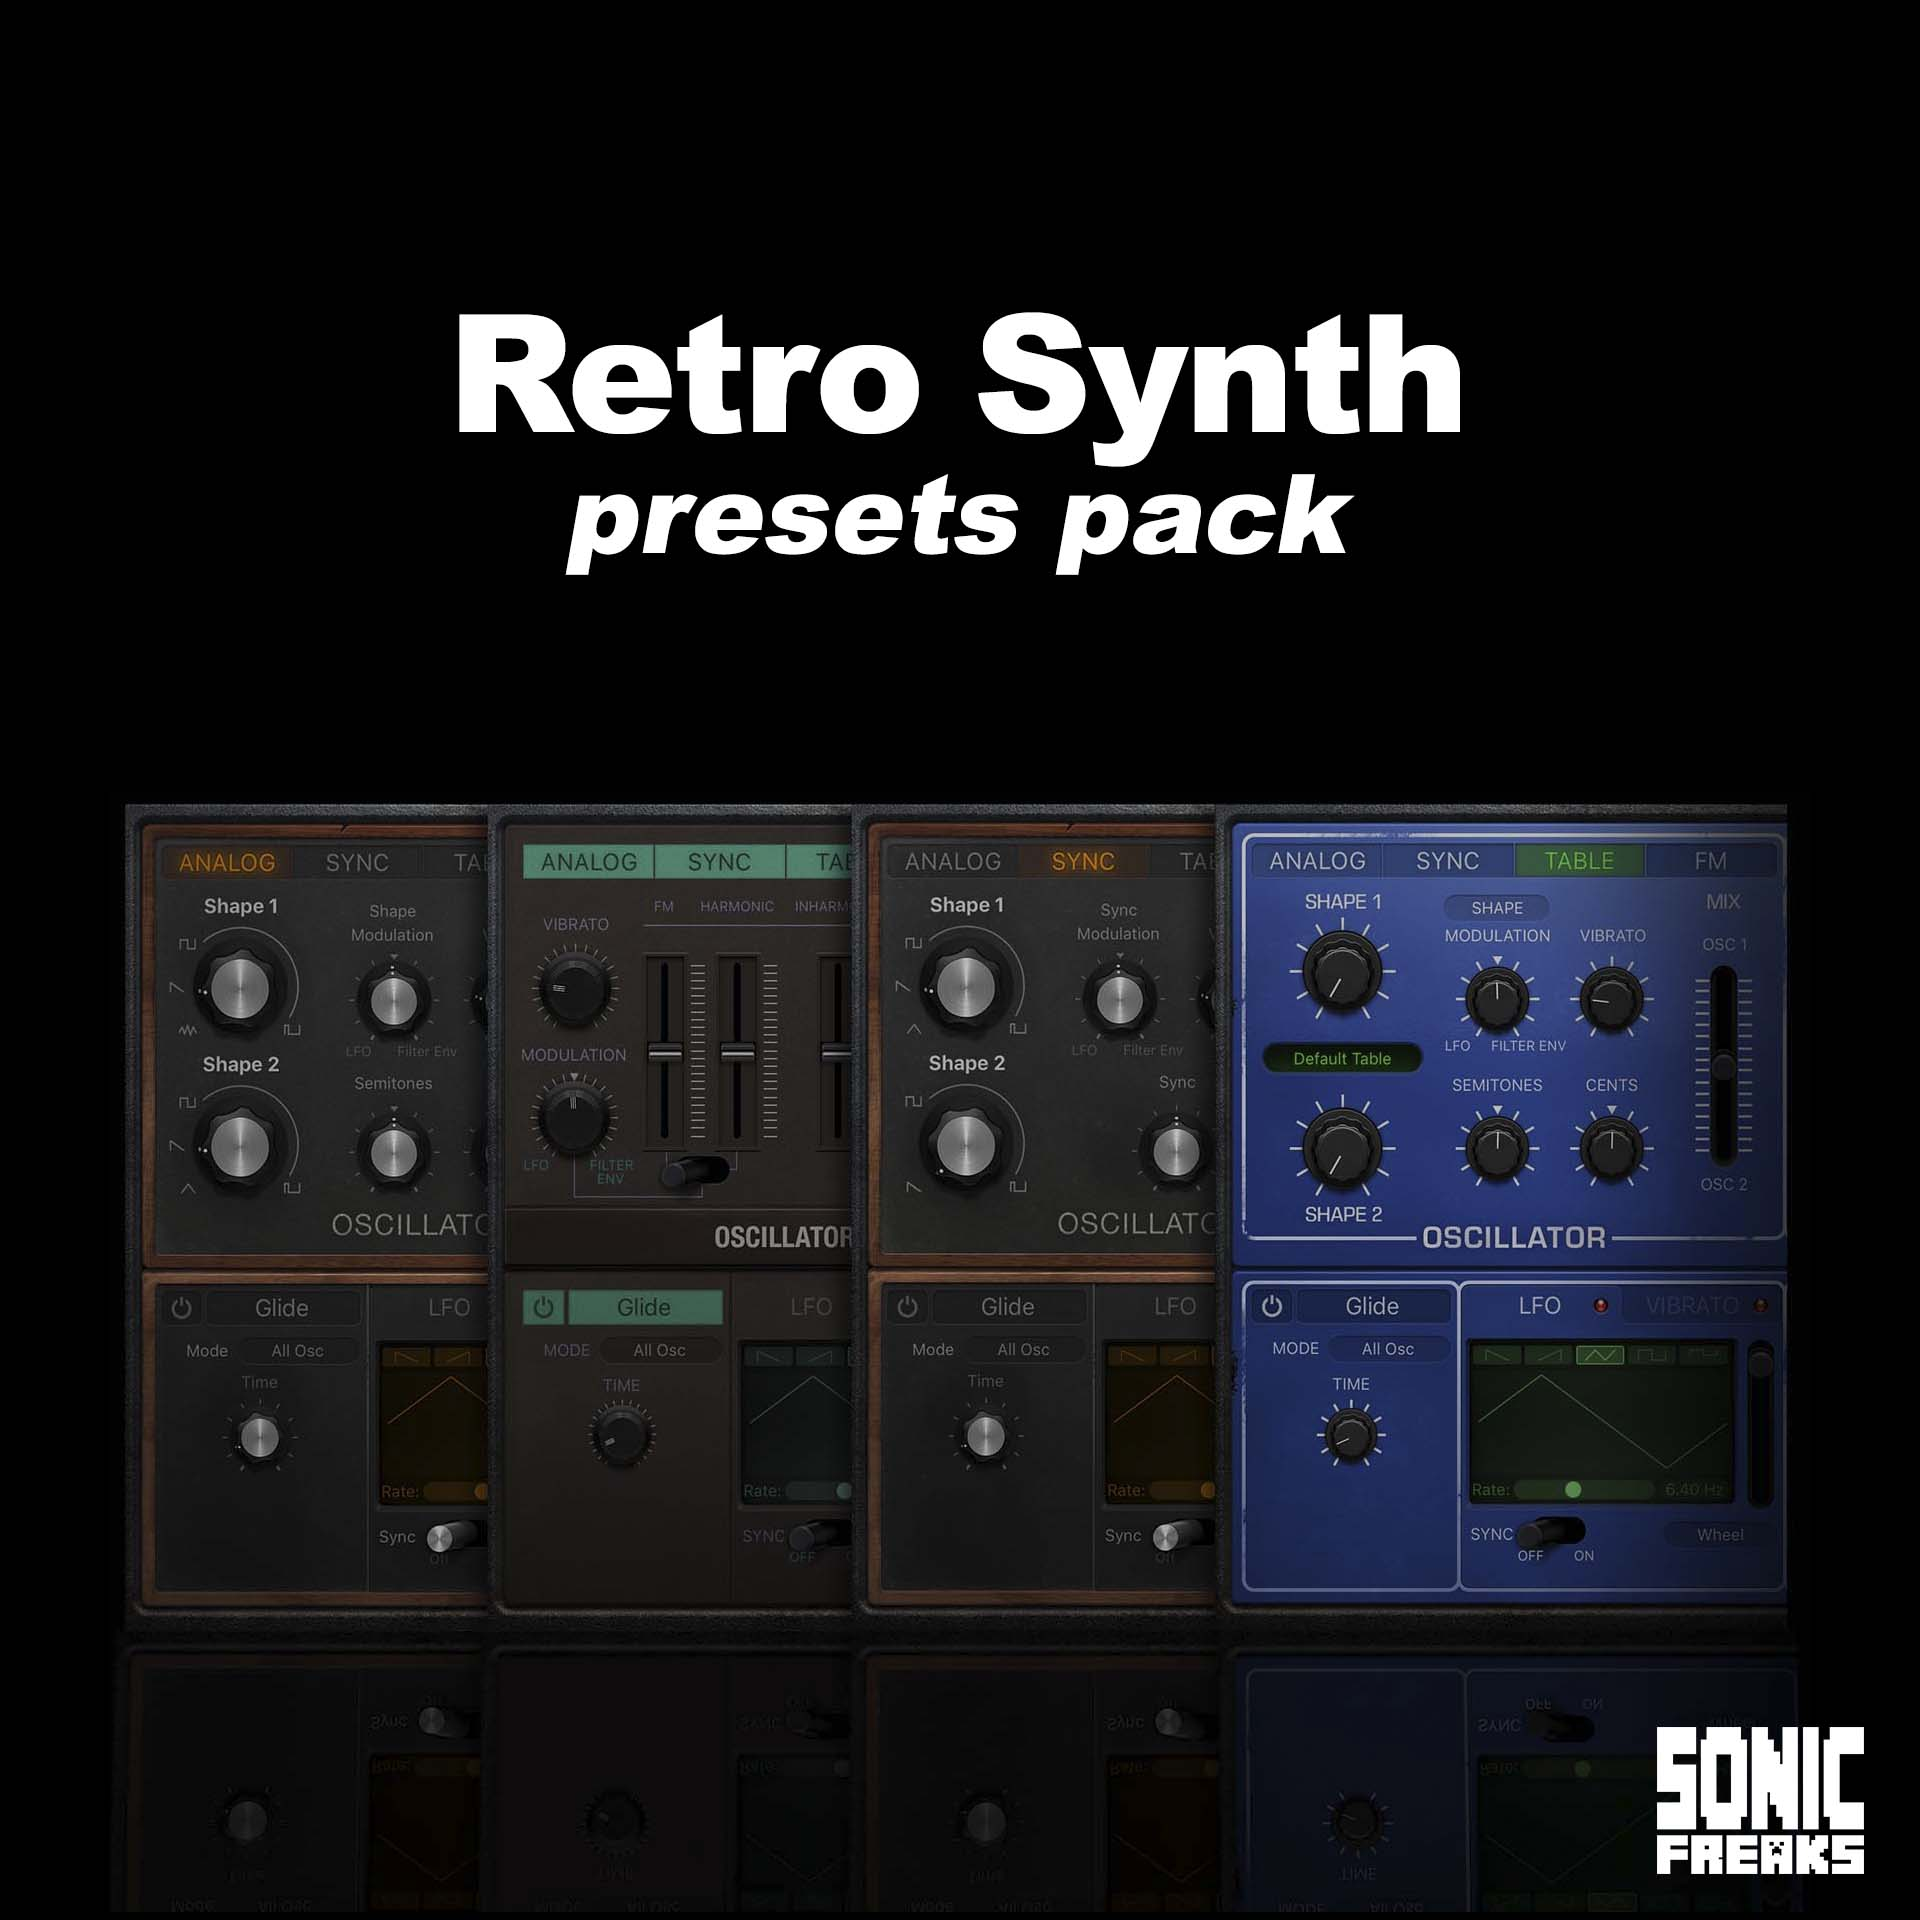 Retro Synth - presets pack